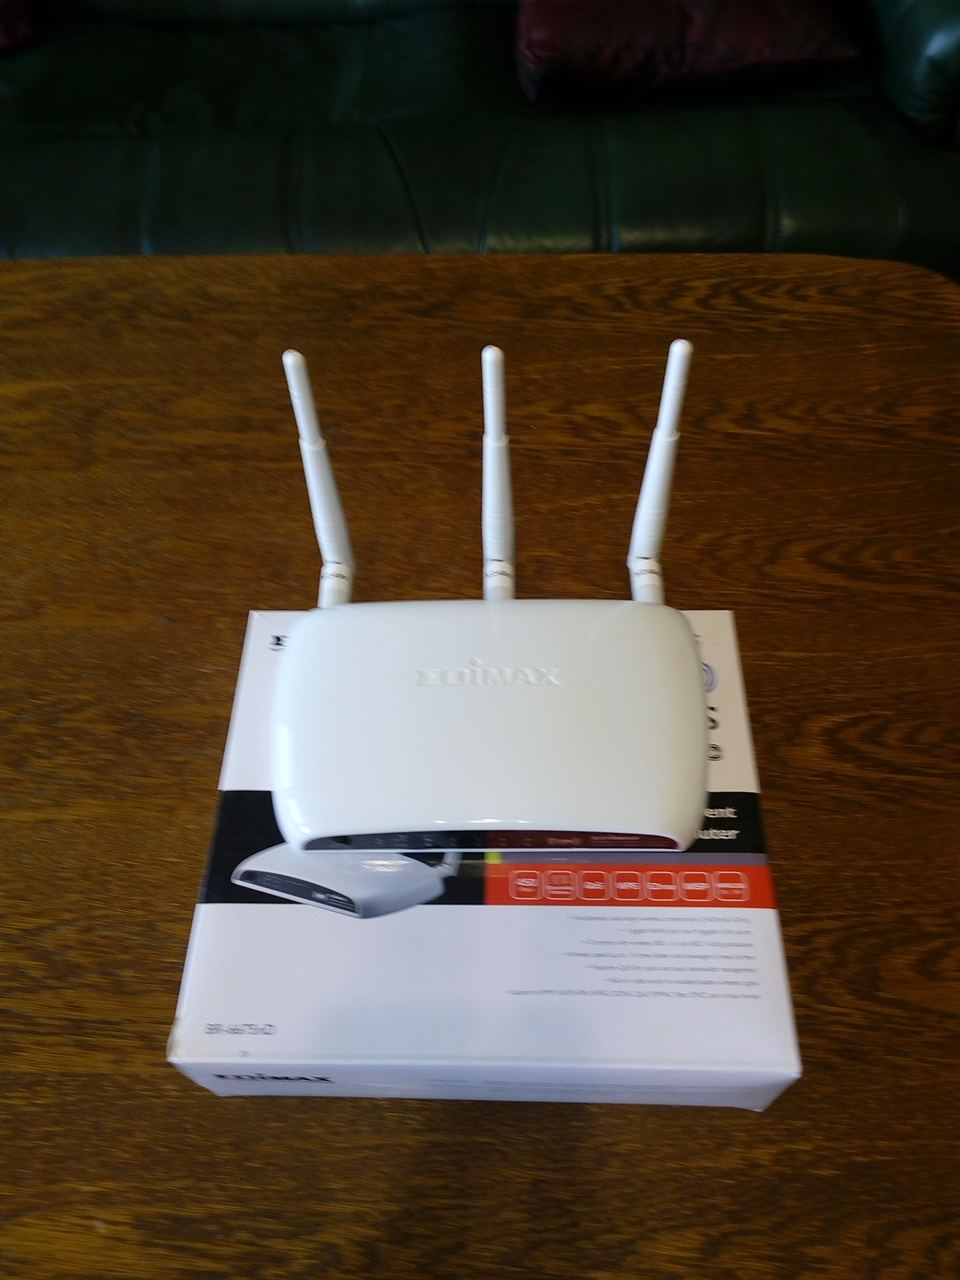 Edimax 450Mbps 11n Wireless Router (BR-6675nD)